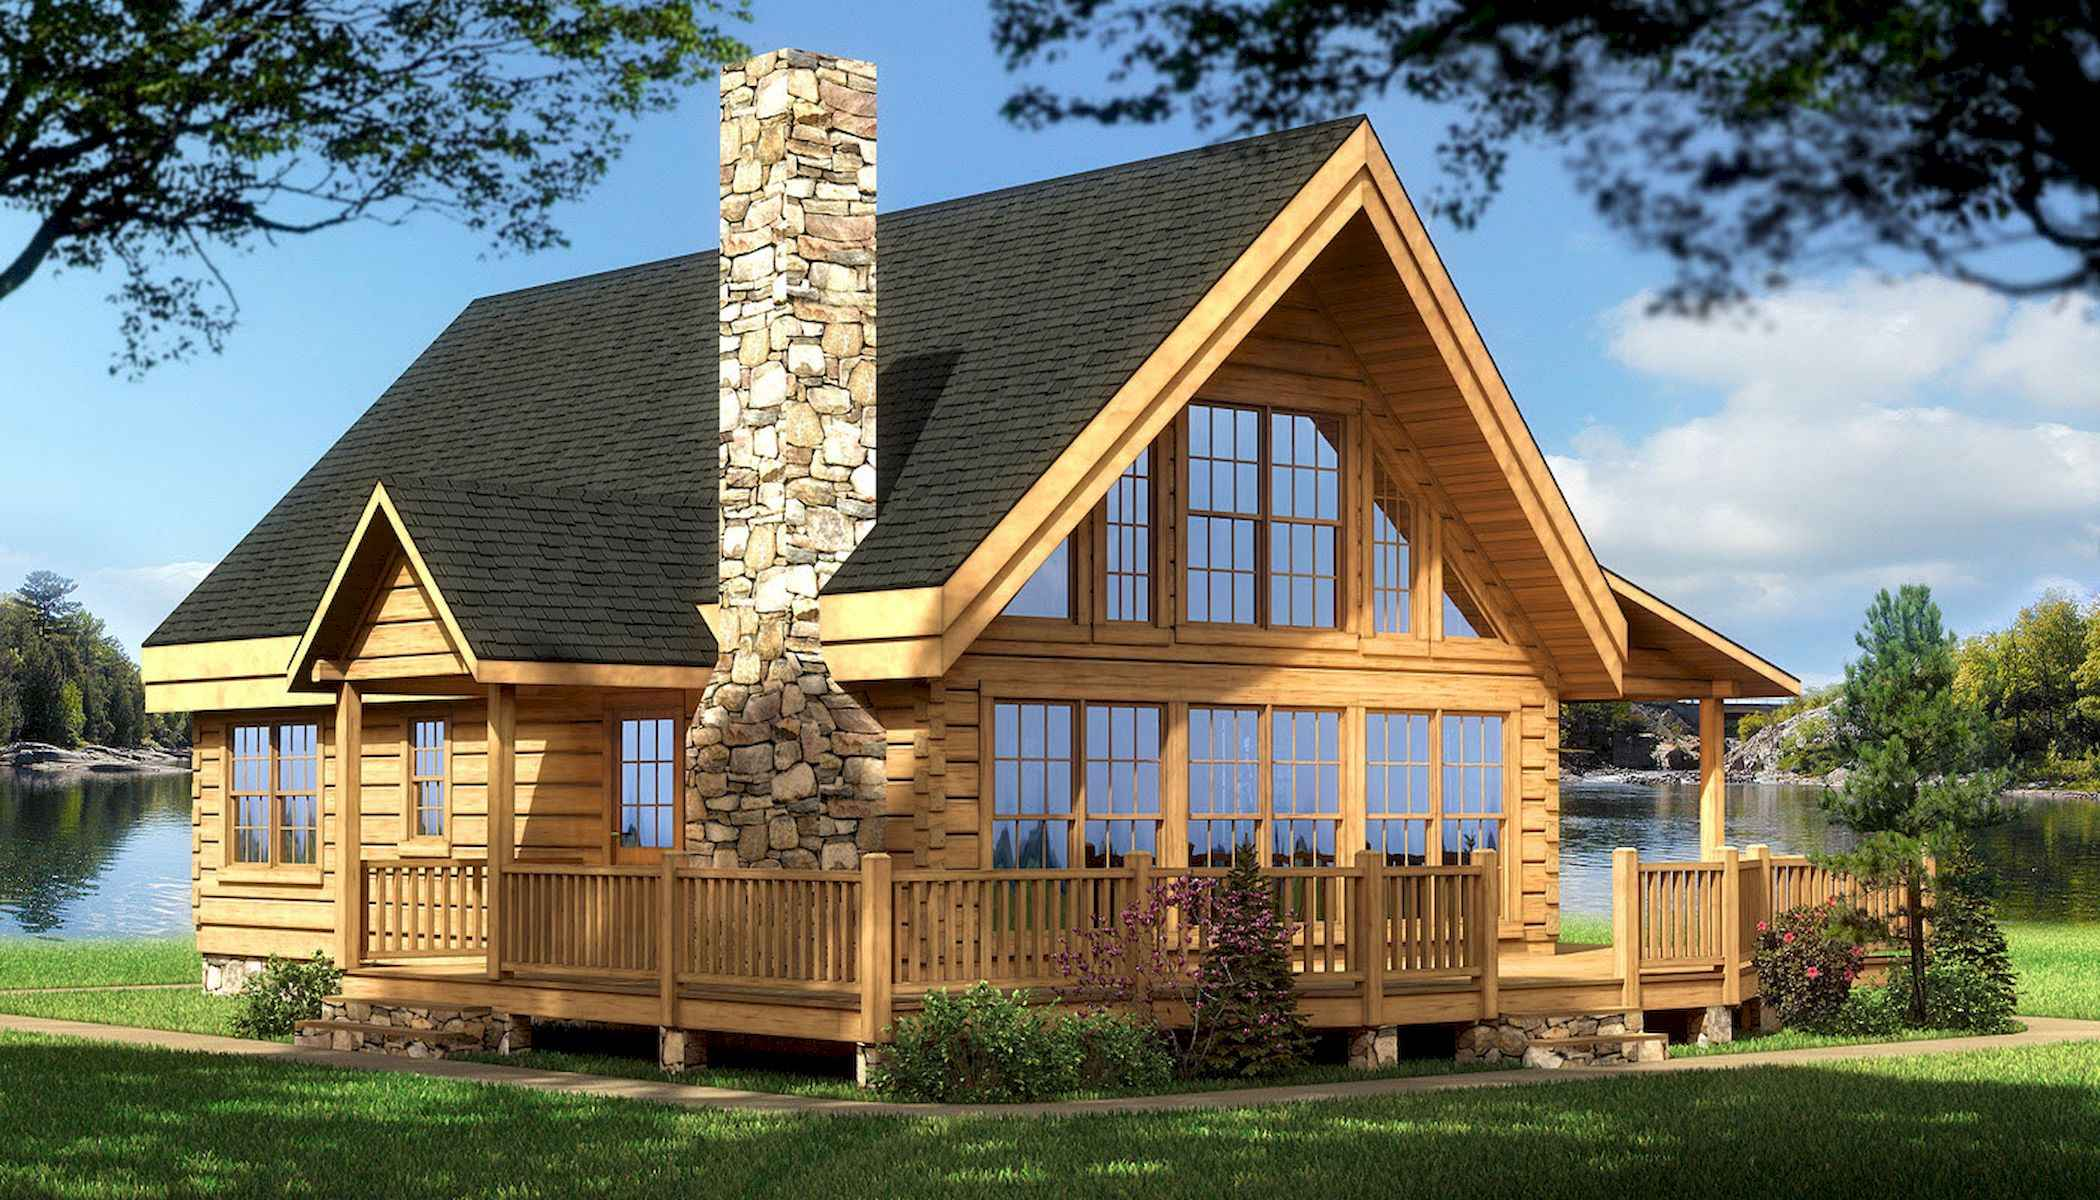 60 Rustic Log Cabin Homes Plans Design Ideas And Remodel (17)